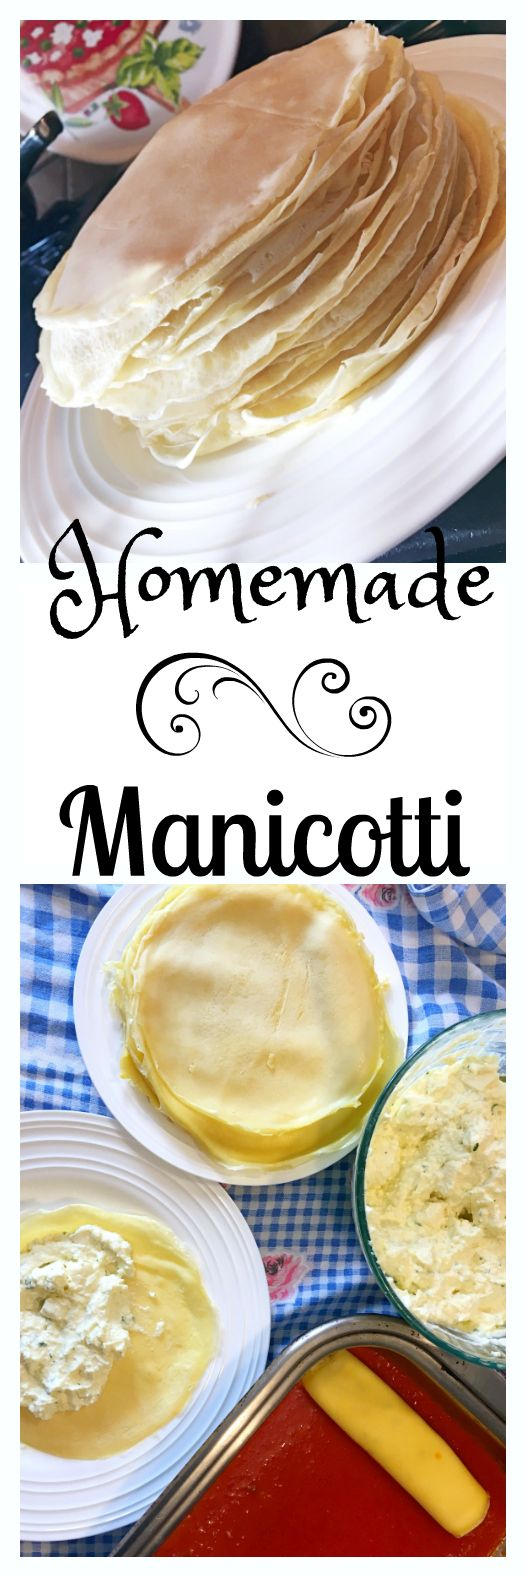 You will love this simple recipe for these Light and fluffy homemade Italian Manicotti filled with a ricotta cheese mixture, baked in a simple san marzano sauce.